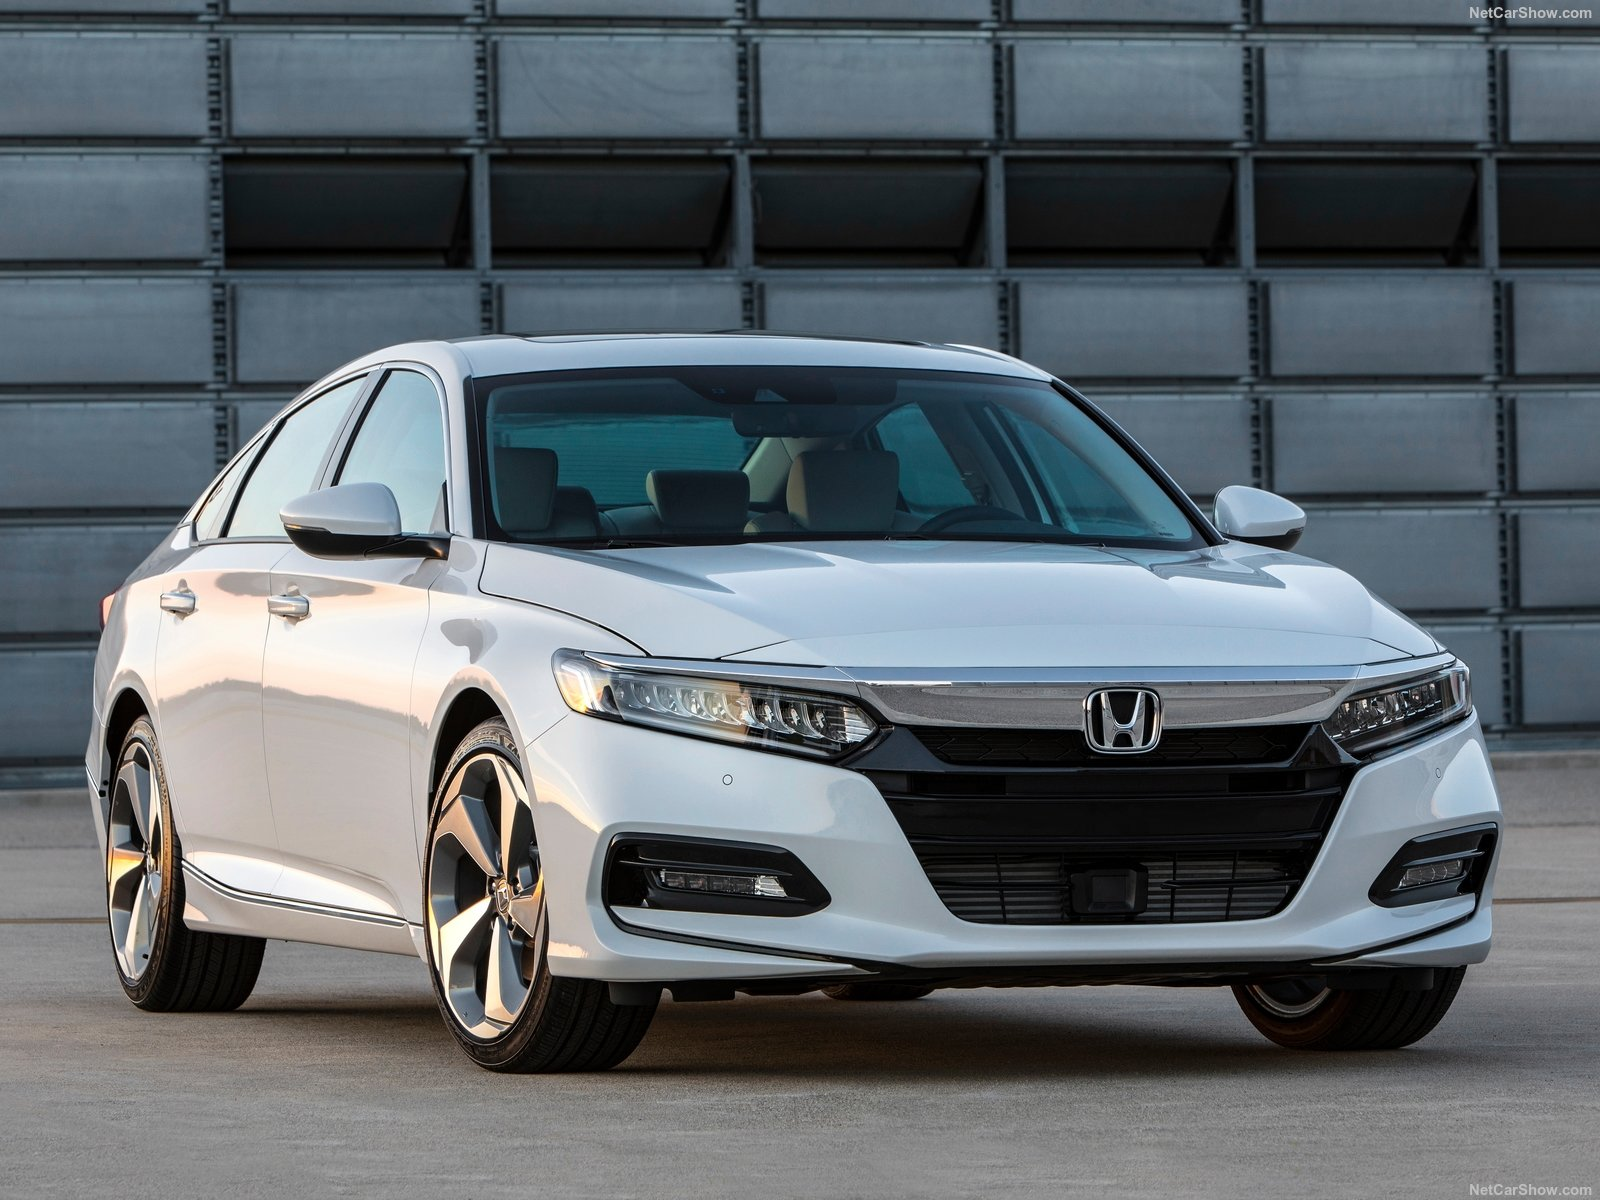 Honda Accord photo 182150